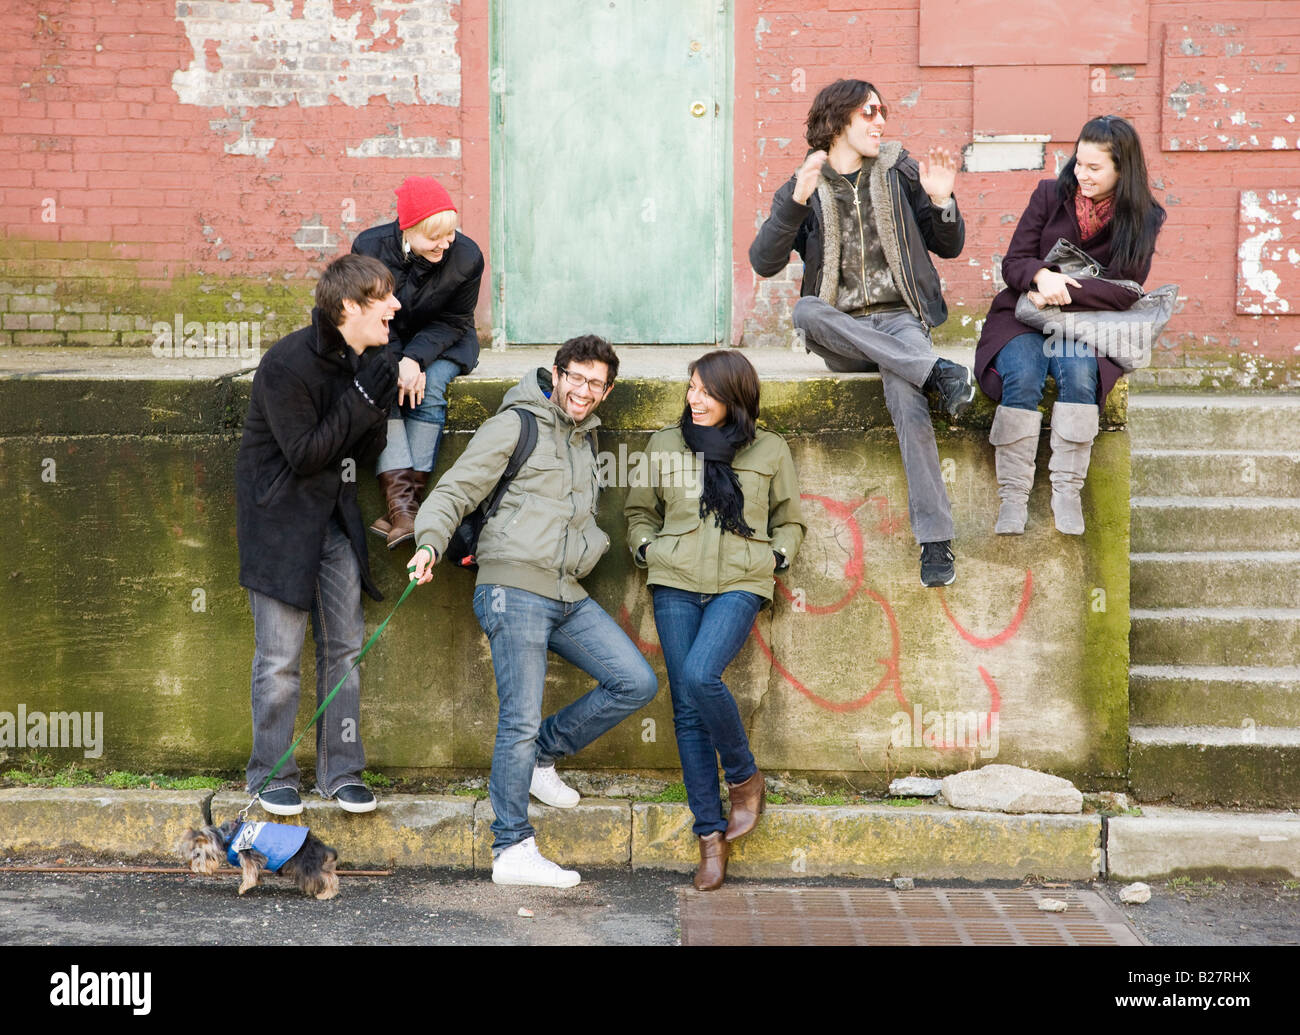 Group of friends sitting in urban scene - Stock Image